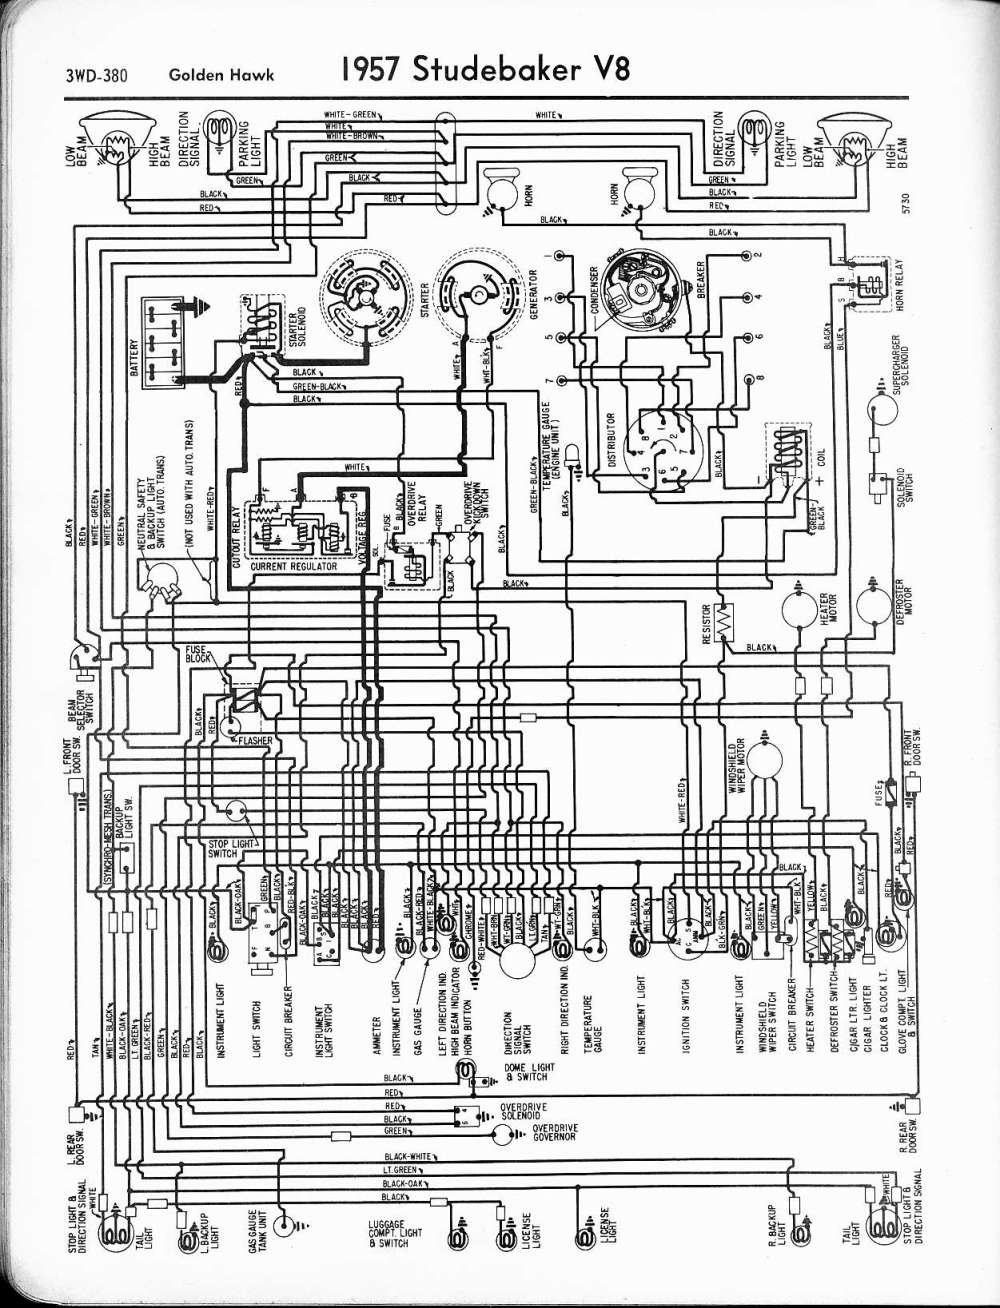 medium resolution of studebaker wiring diagrams the old car manual project wiring diagram for 1957 studebaker v8 golden hawk